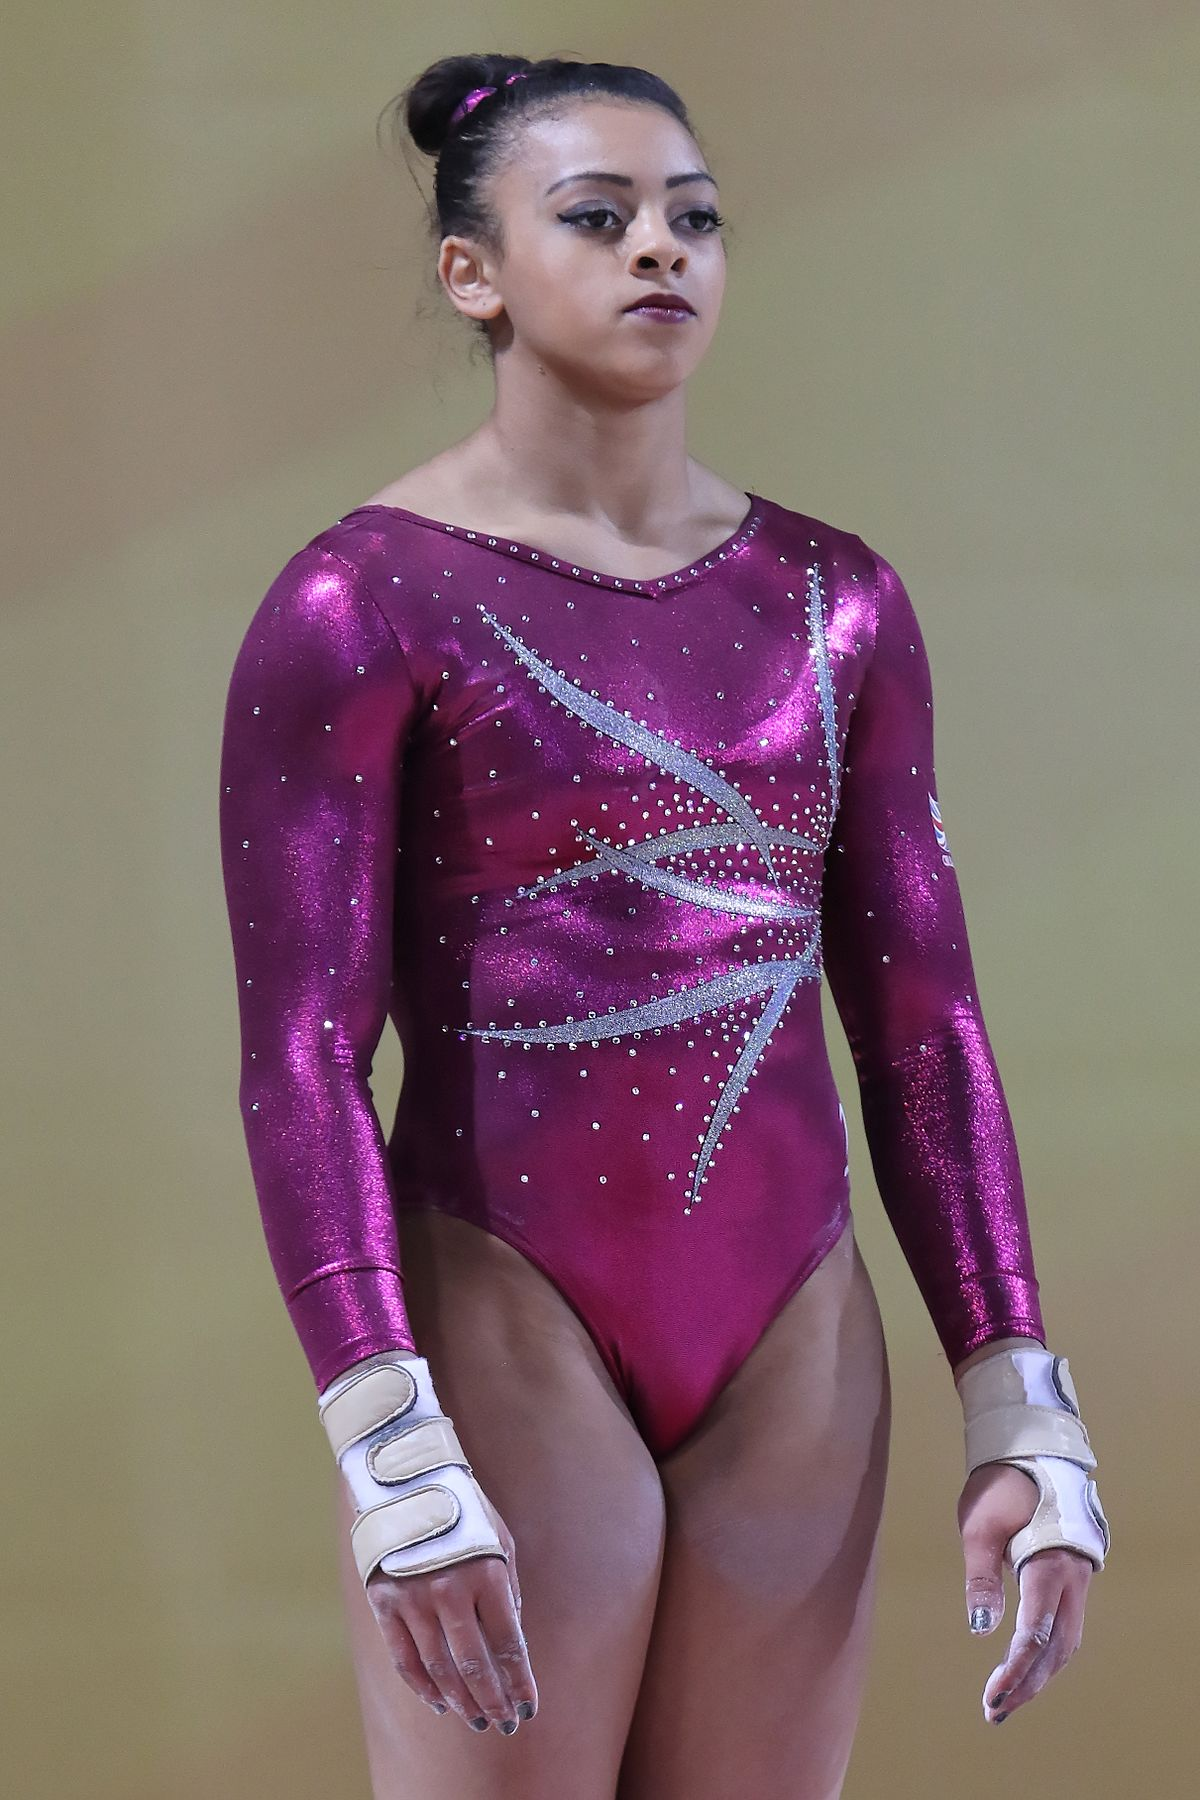 Ellie Downie Wikipedia